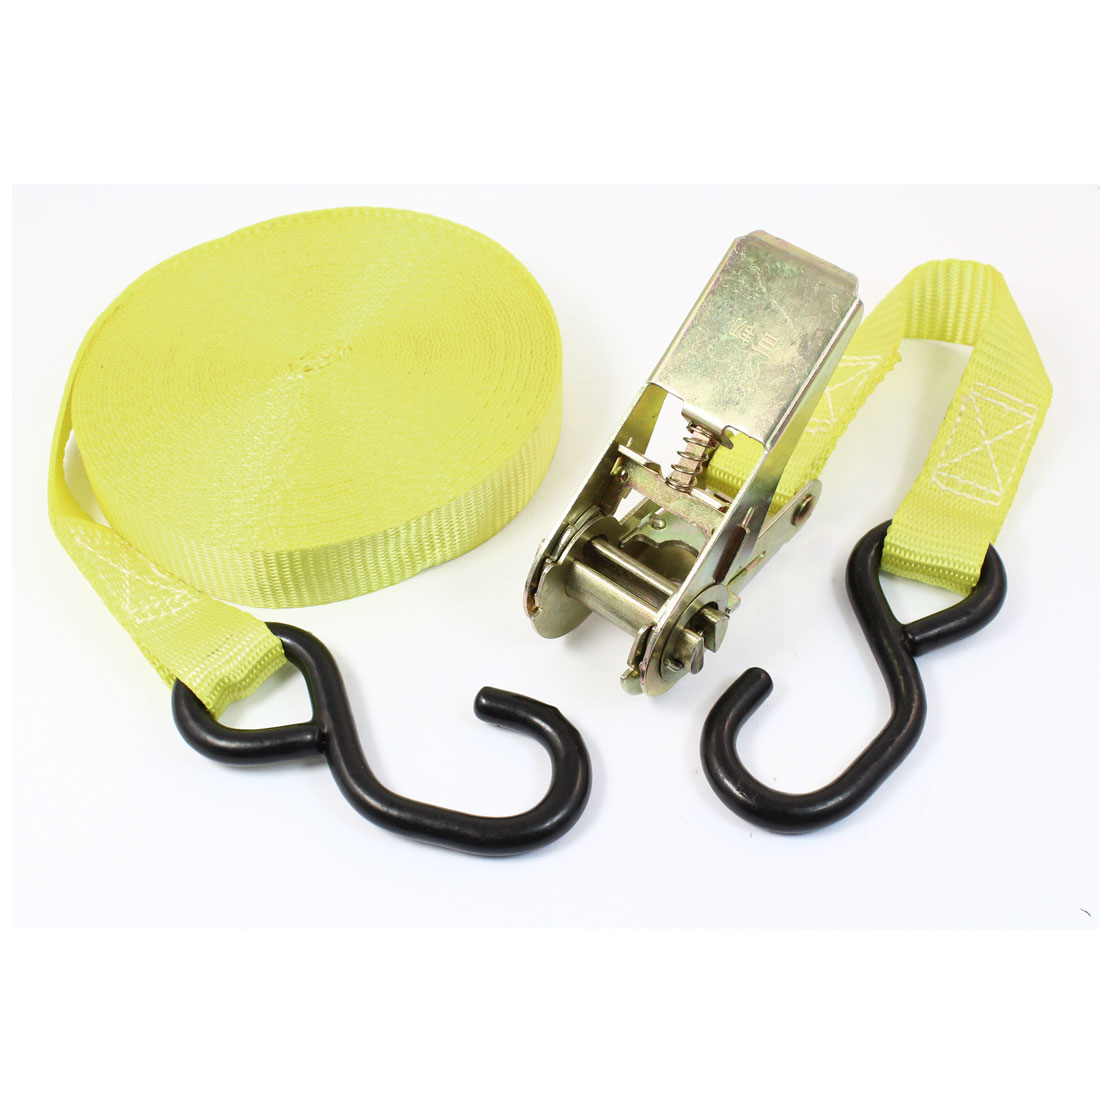 S Shape Metal Hook Cargo Binding Ratchet Tie Down Strap 10M 33ft Yellow